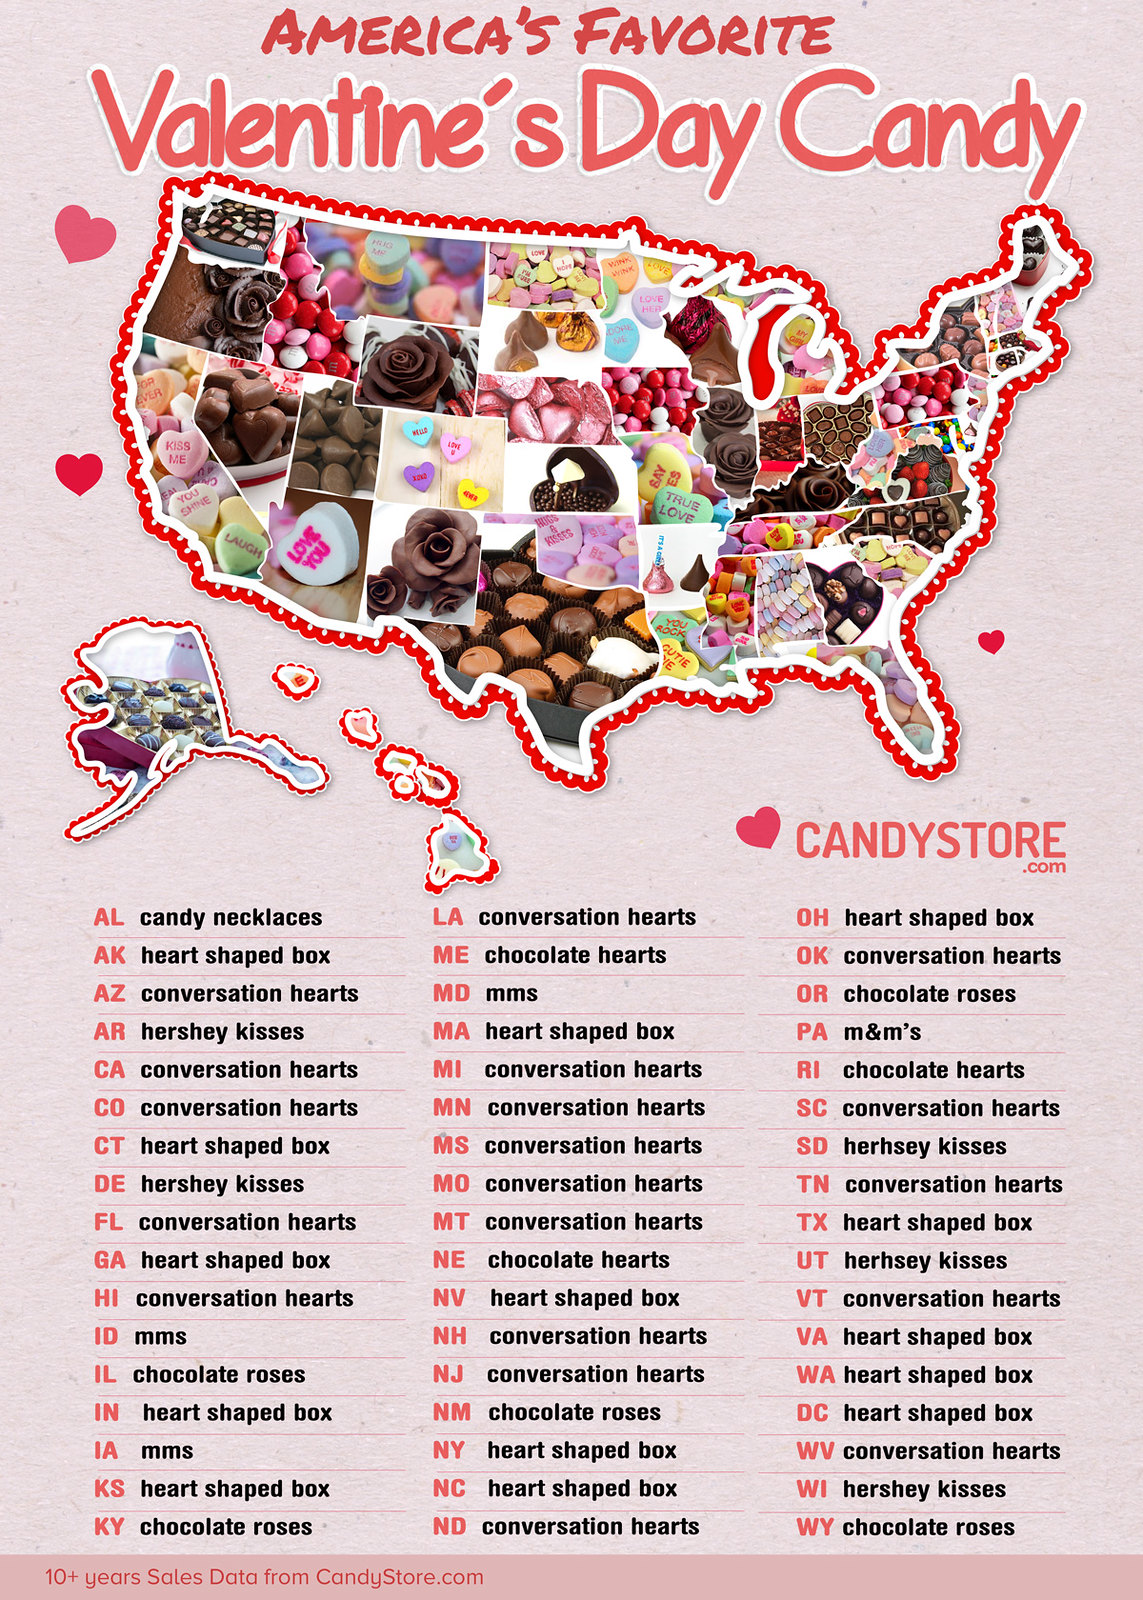 Valentine's Day candy list by state from CandyStore.com